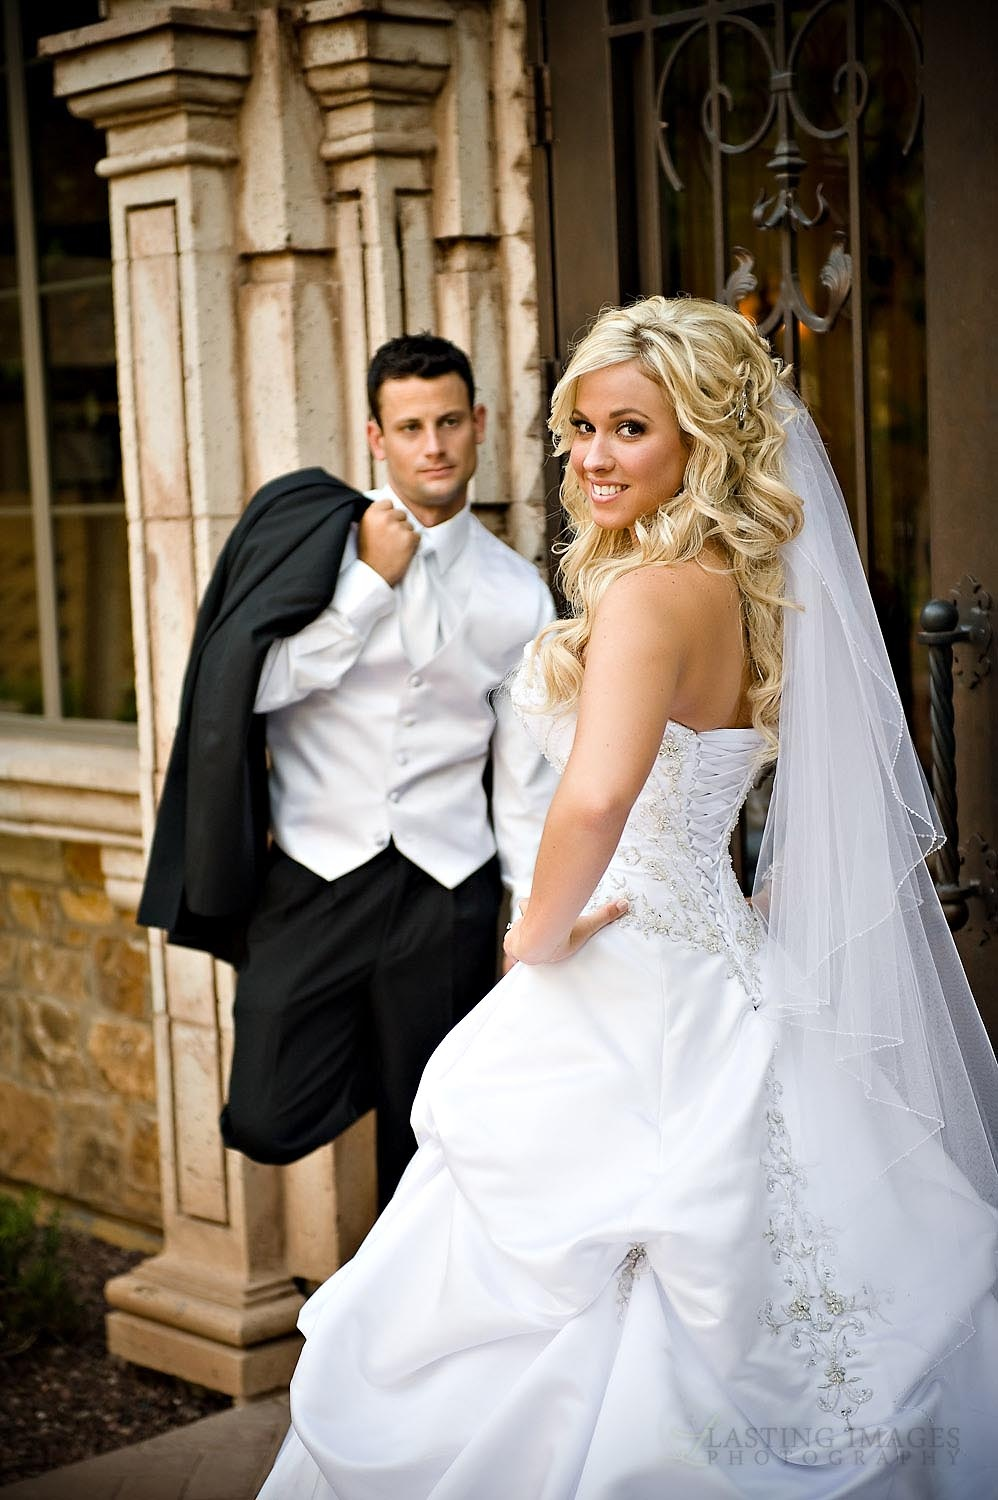 Bridal Parties Outdoor Wedding Pictures And Wedding Photography On Pinterest